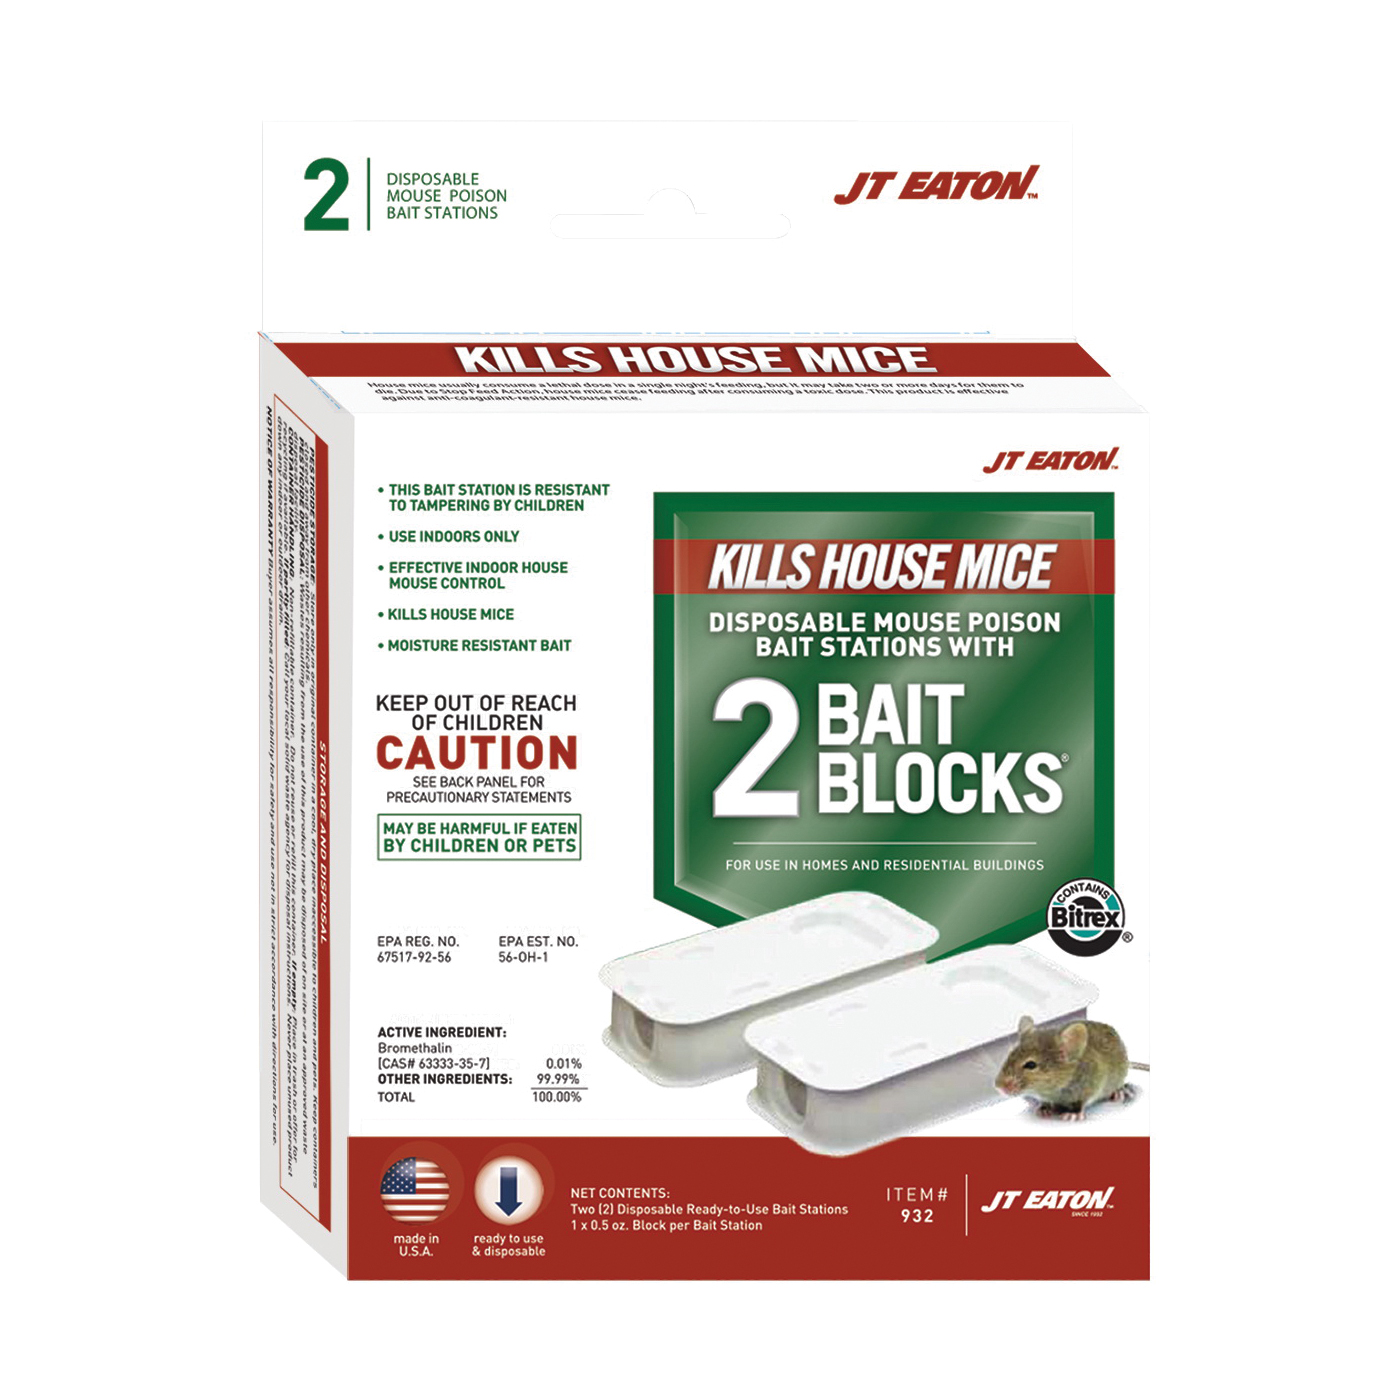 Picture of J.T. EATON Answer 932 Mice Bait Station, 1 oz Bait, Green